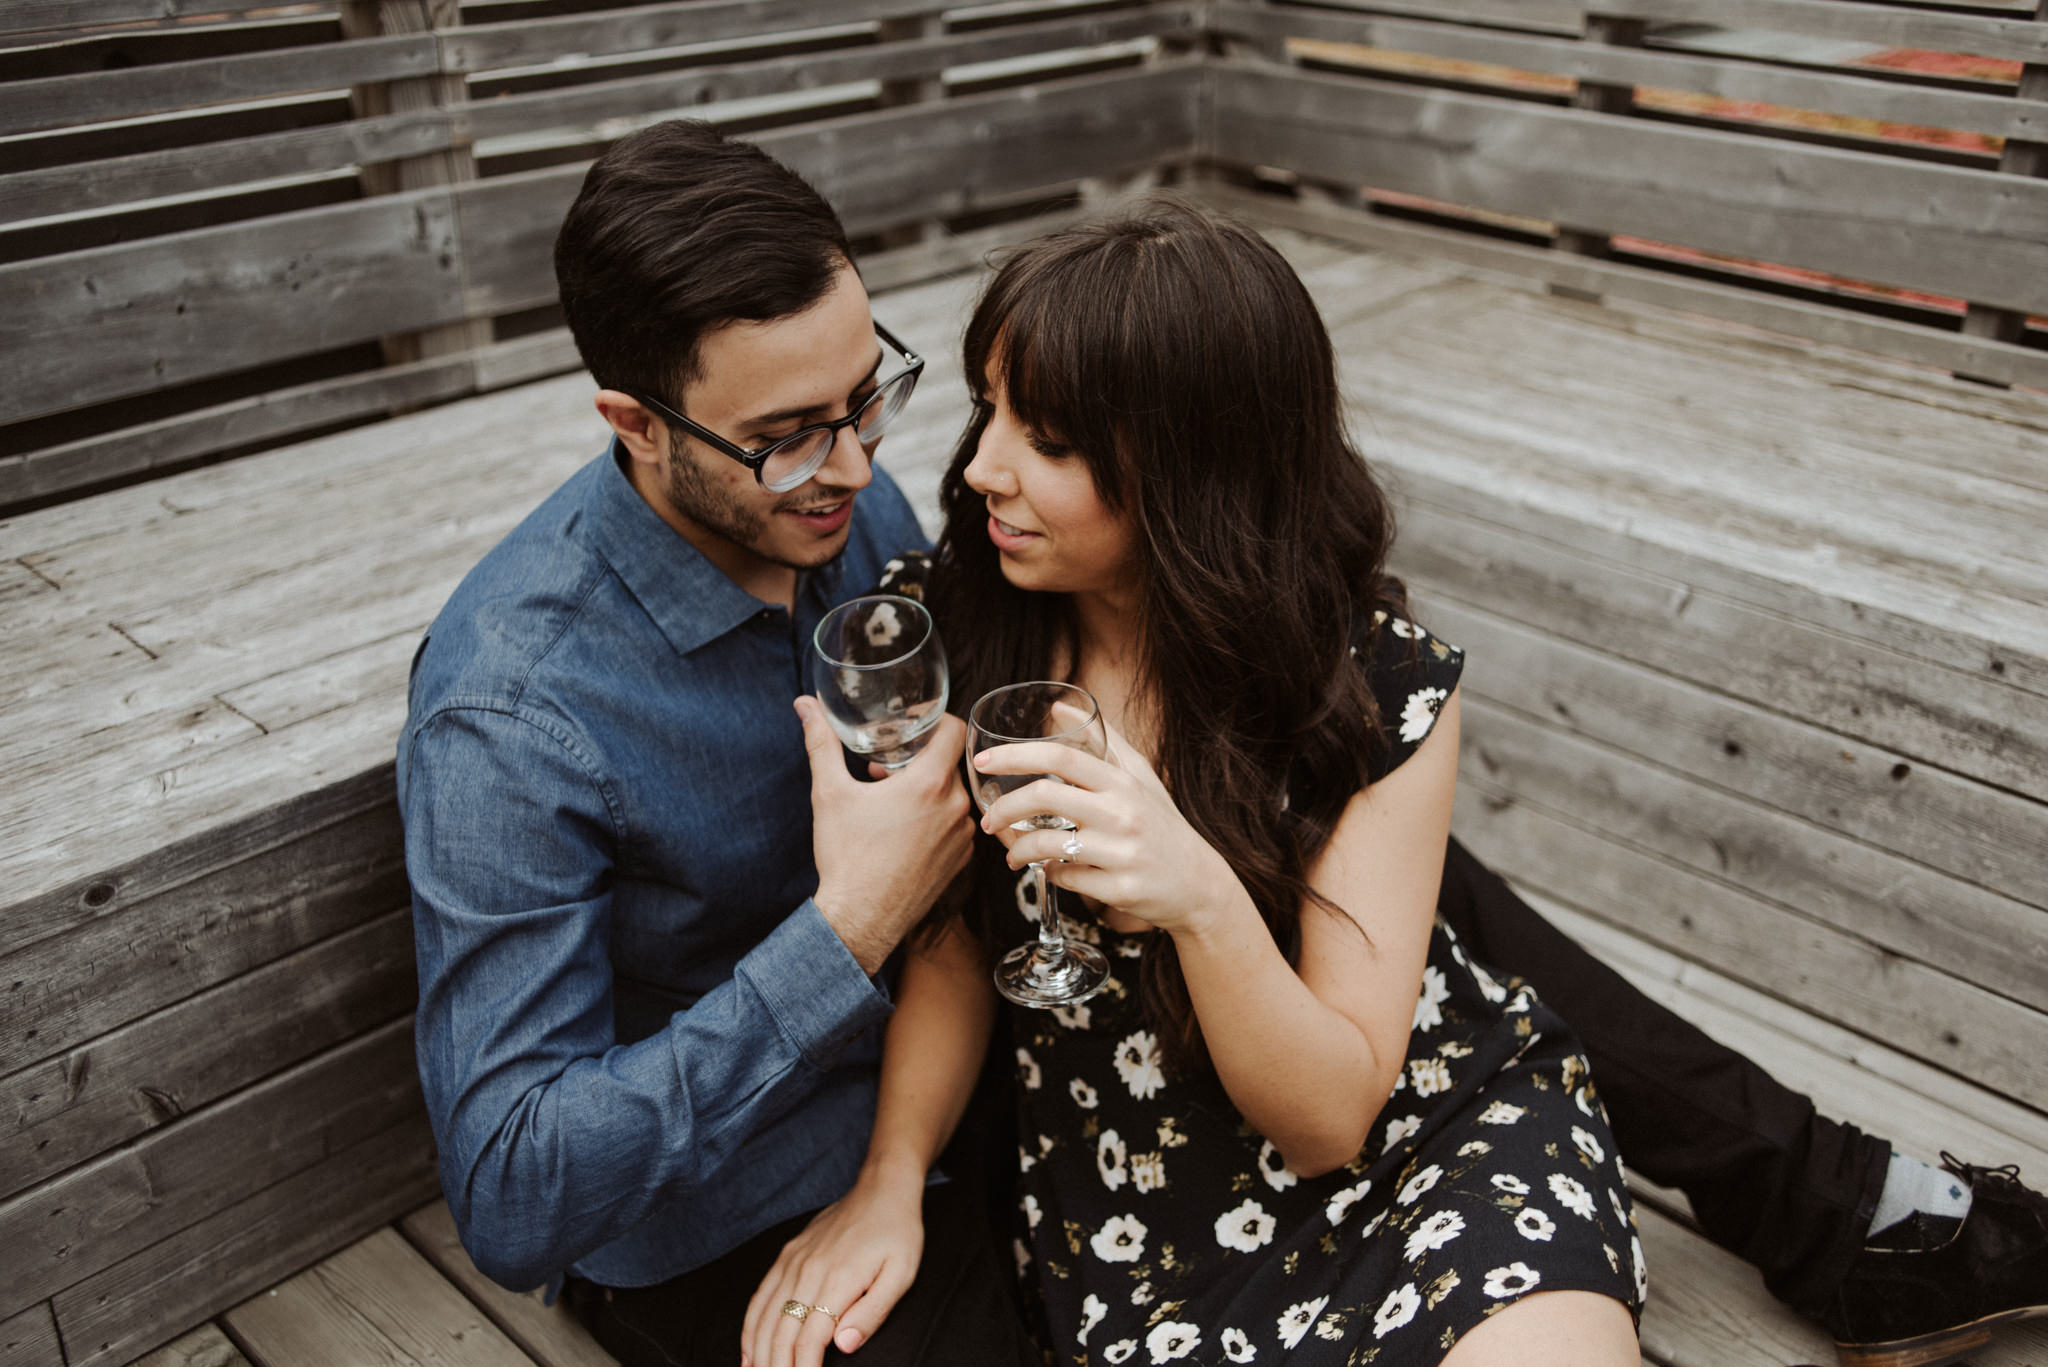 couple cuddling on rooftop and drinking wine